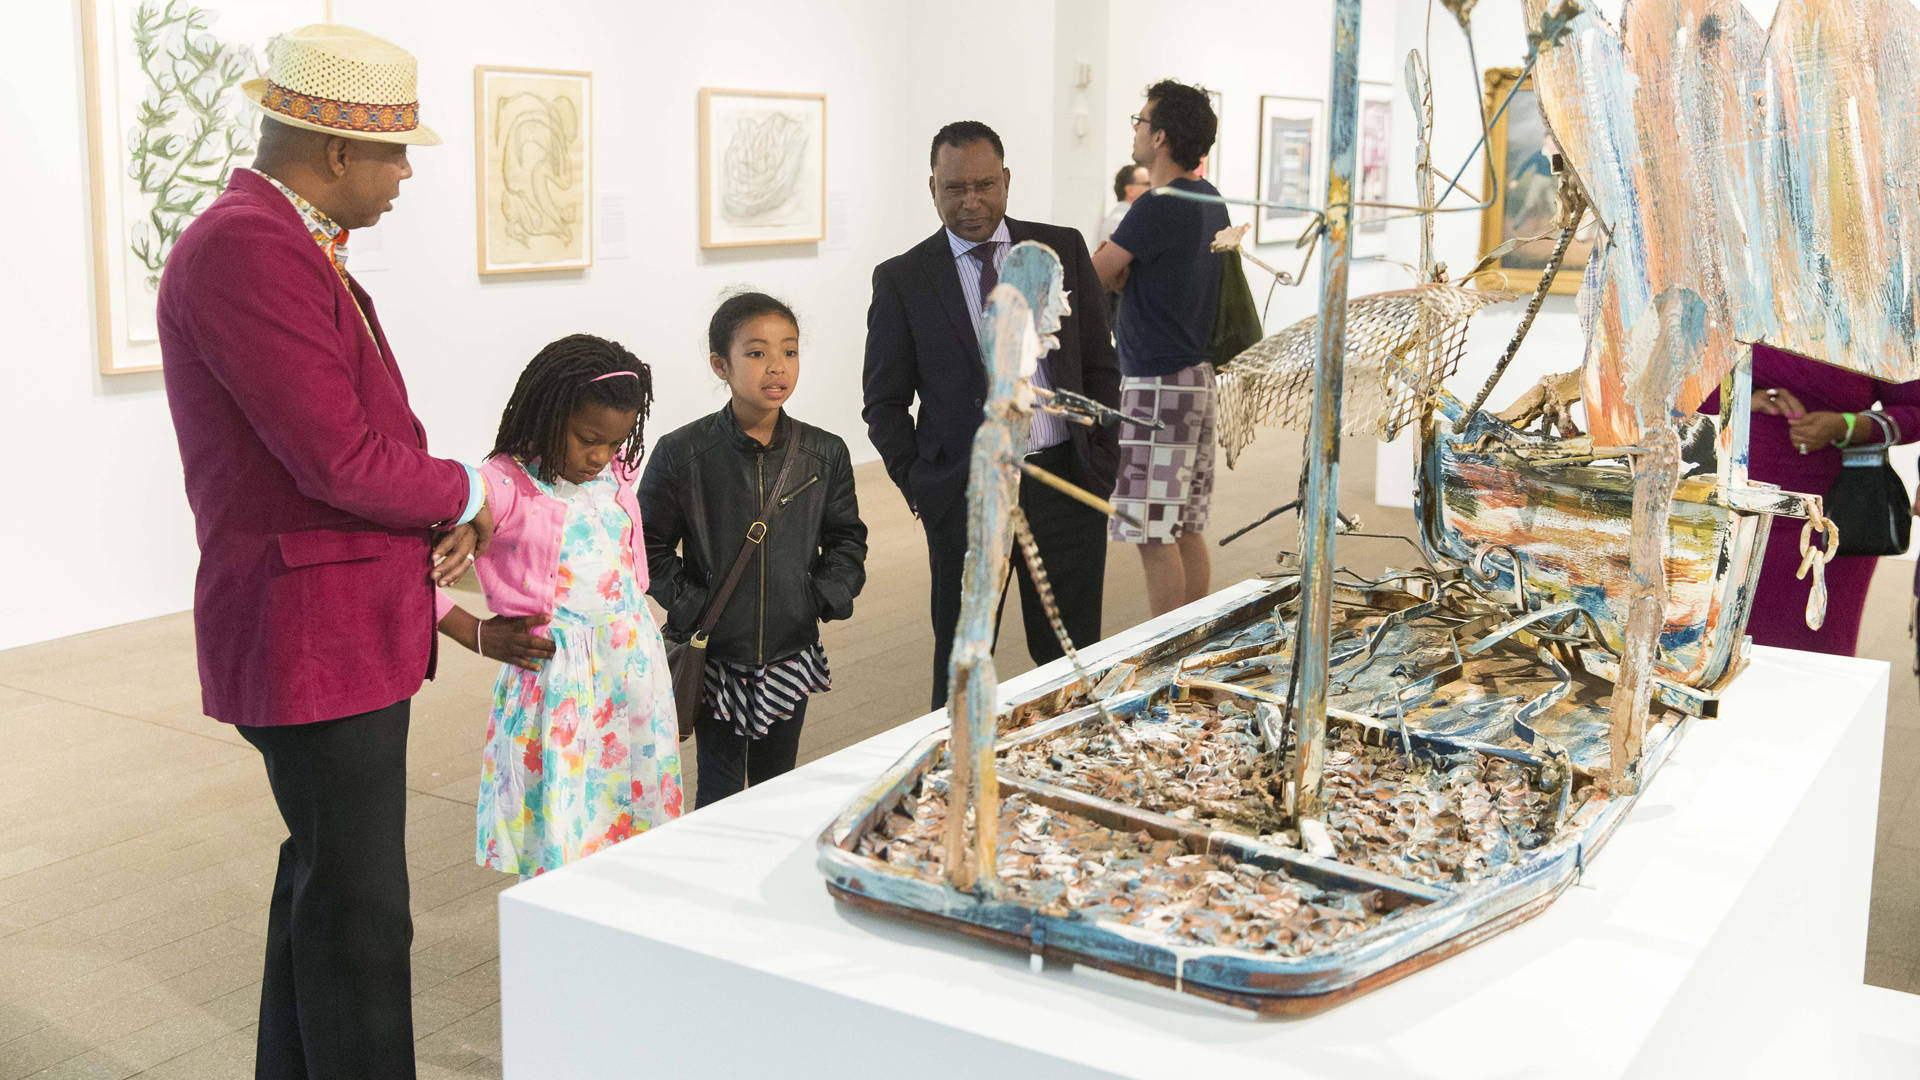 Guests viewing work by Thornton Dial, Jr., 'The Slave Ship,' 1988 in 'Revelations: Art from the African American South' at the de Young. Photo by Drew Altizer Photography; Courtesy of the Fine Arts Museums of San Francisco